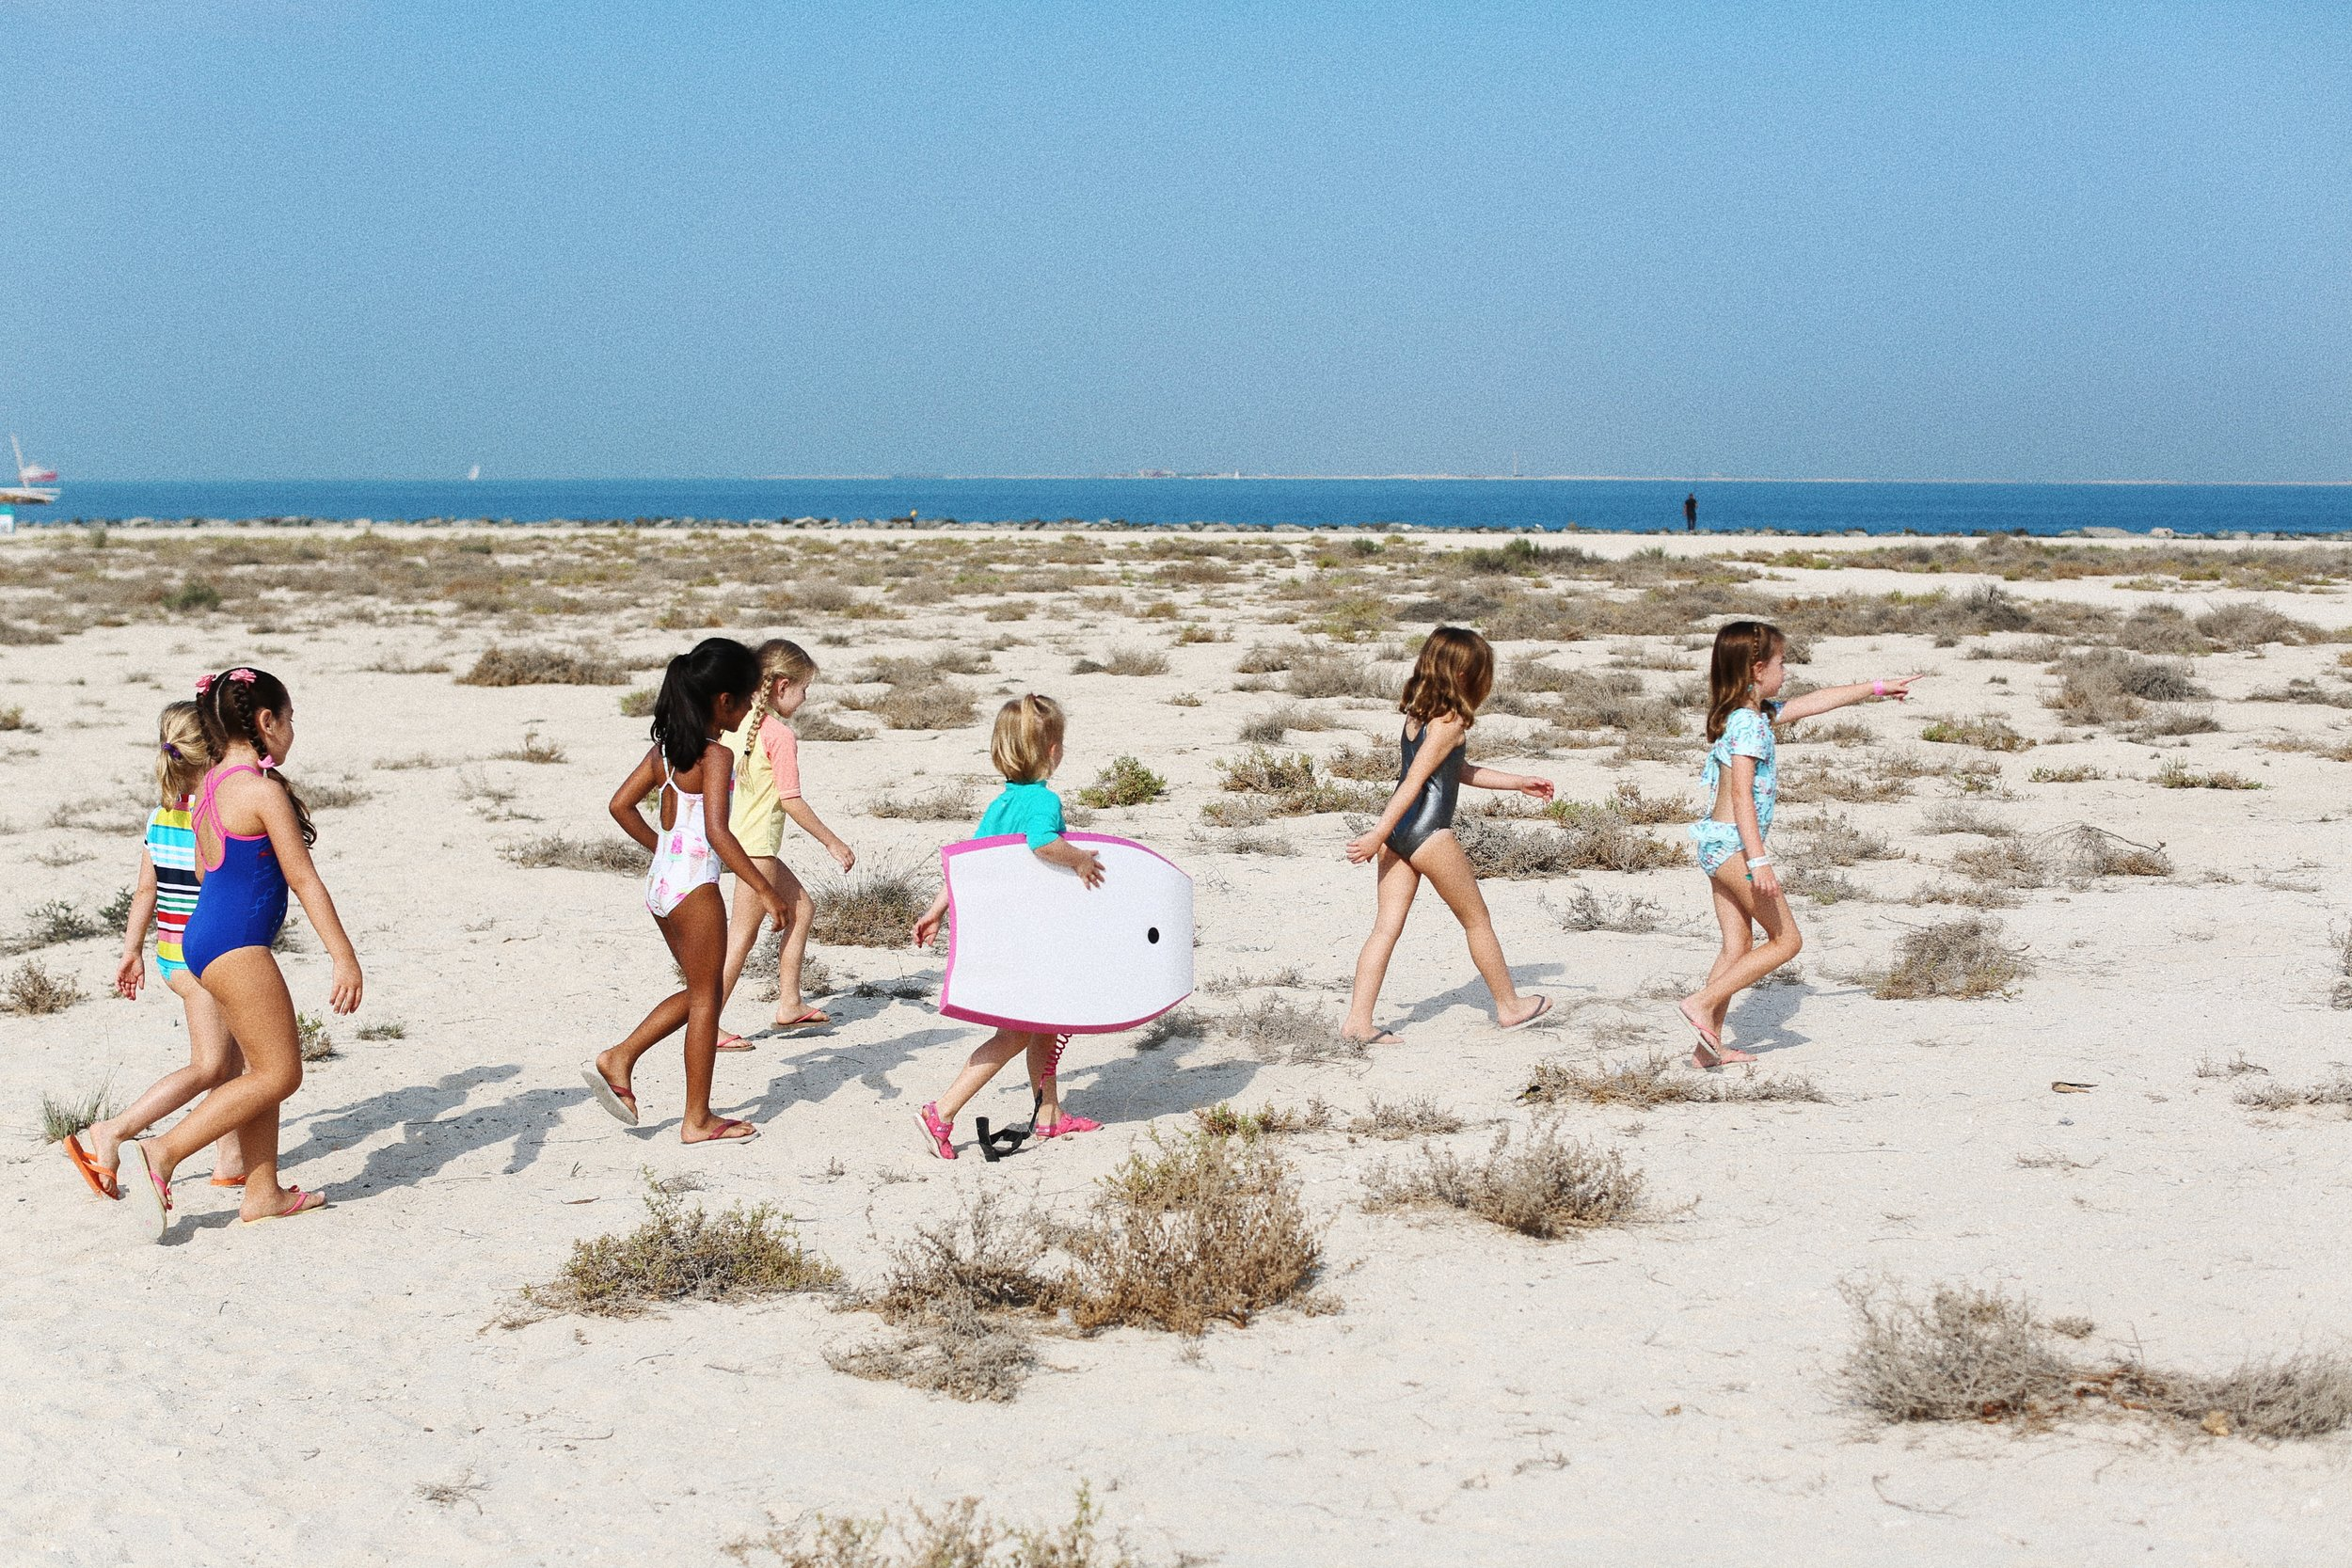 Leo and her friends heading to the sea at Dubai's Nessnass beach